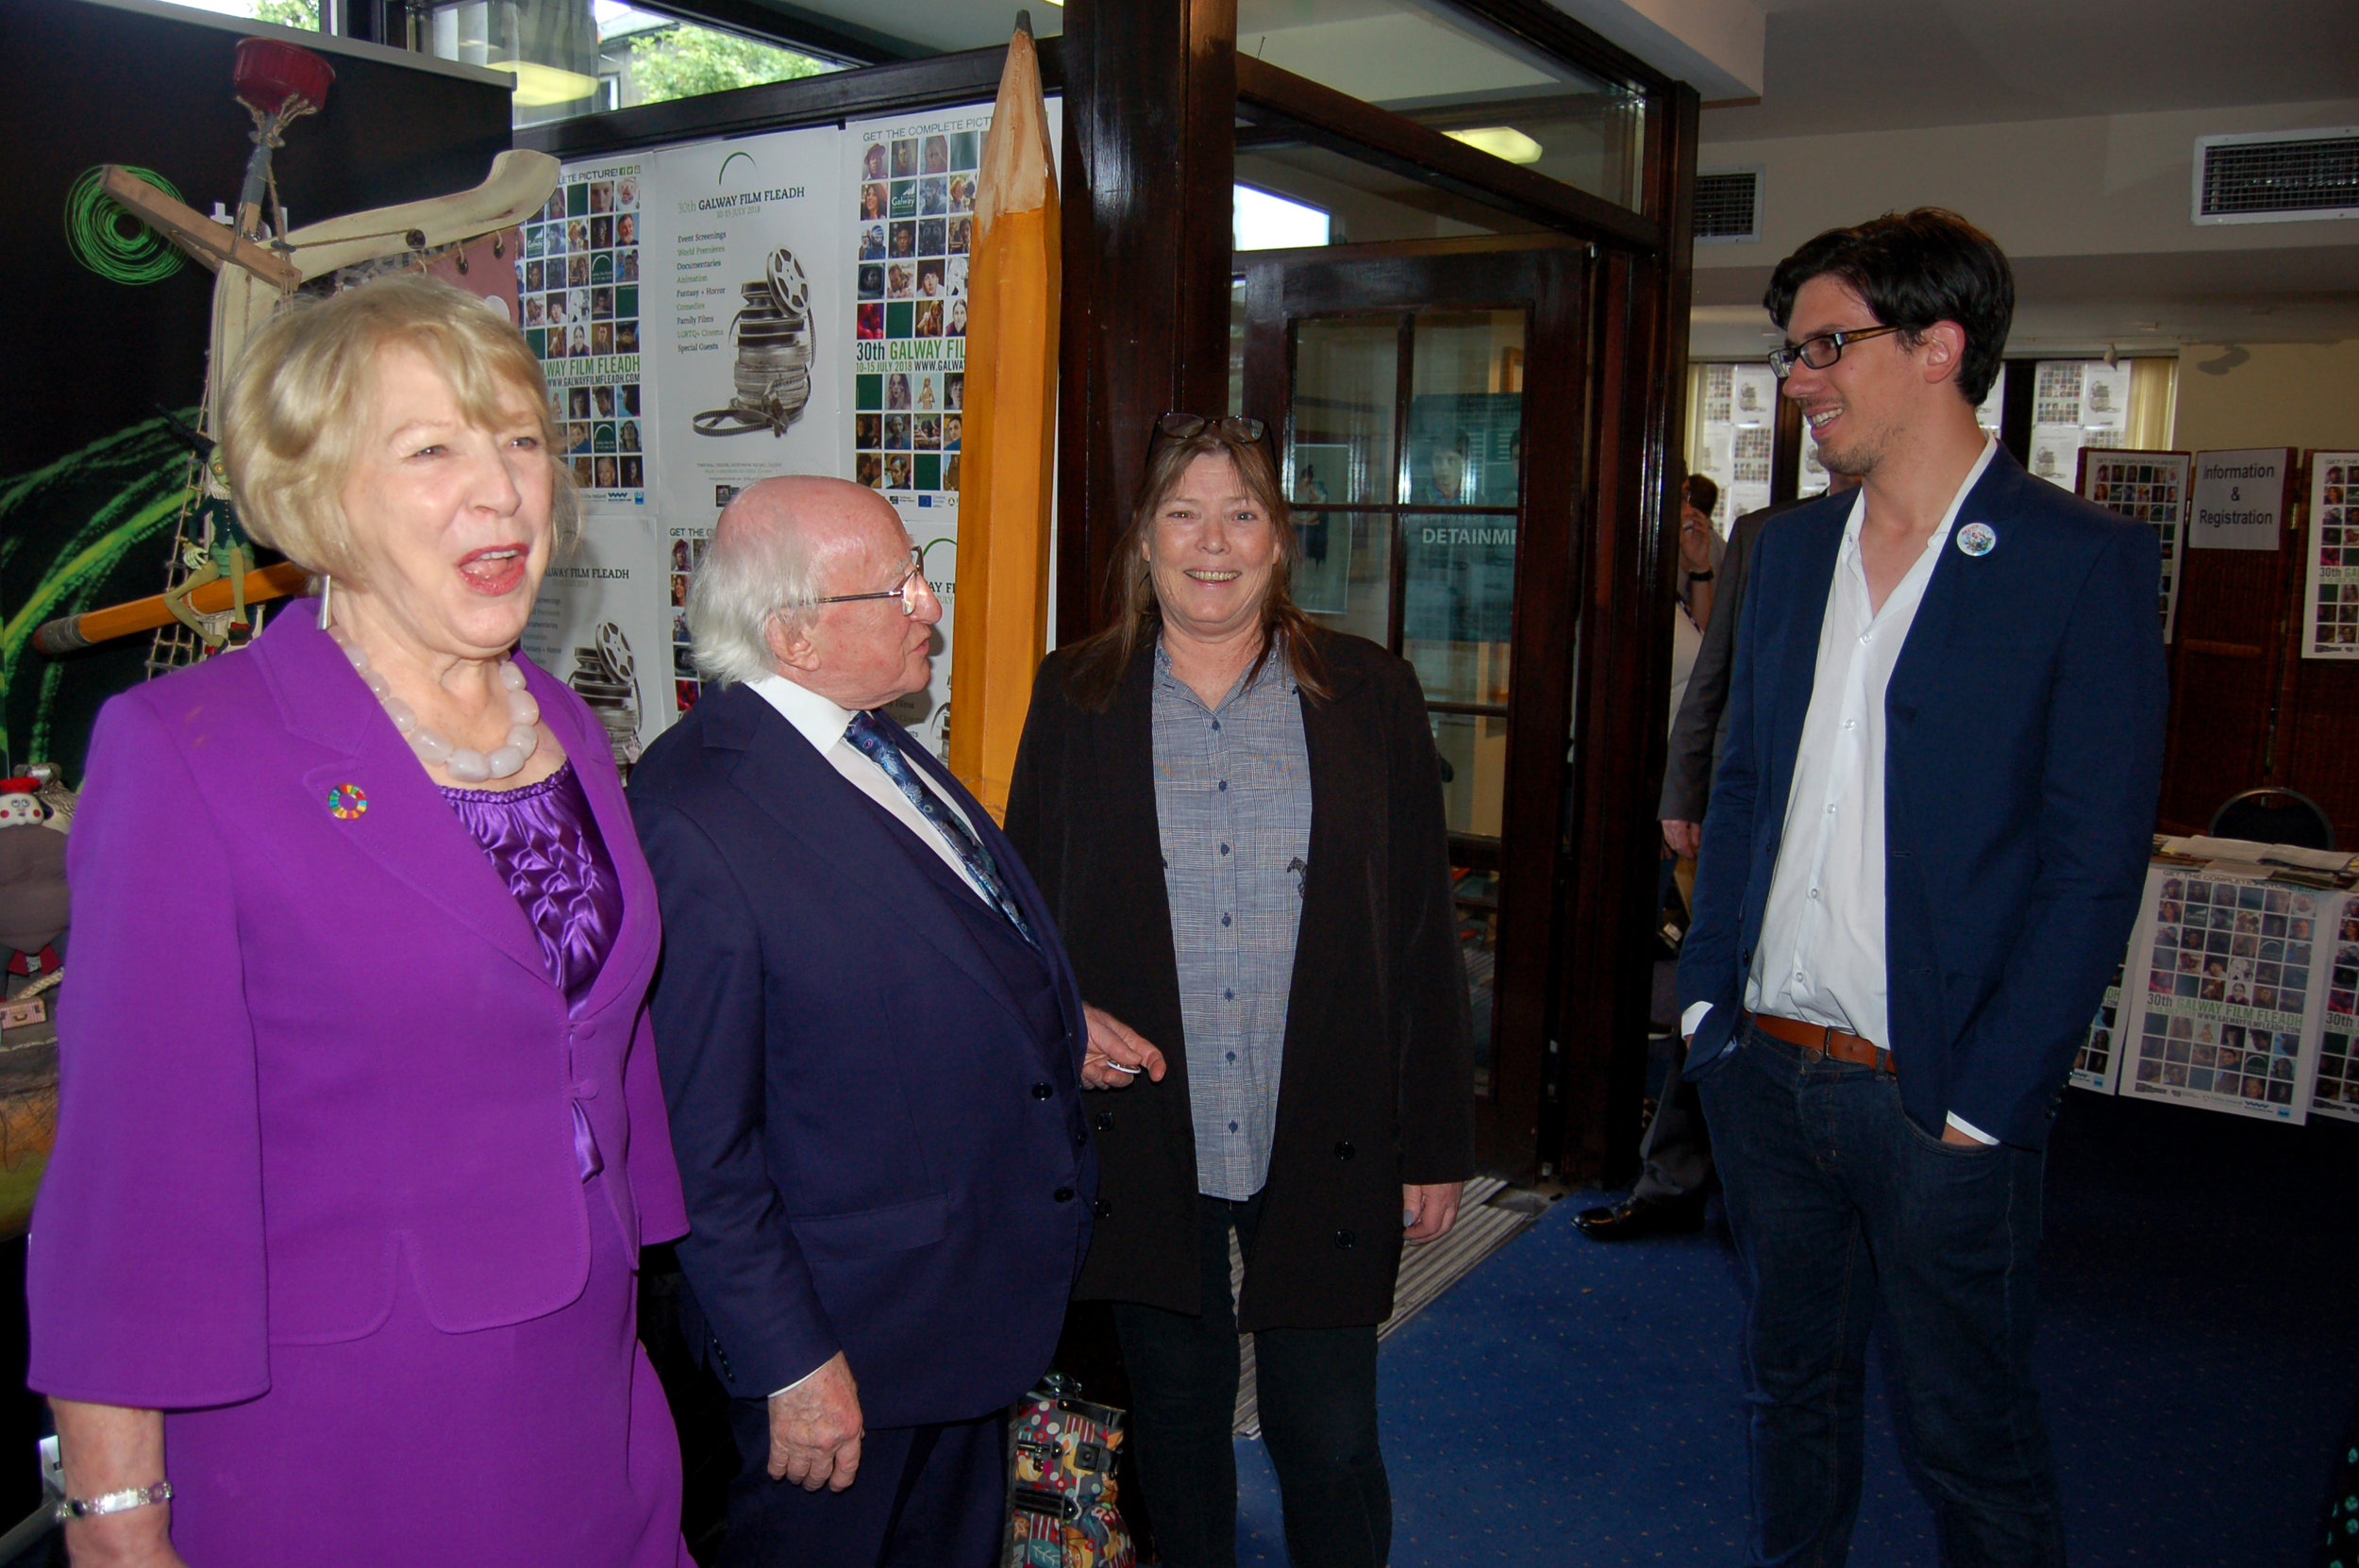 Mrs. Sabina Higgins, President Higgins and Galway Film Fleadh CEO Miriam Allen discussing 'Captain Morten and the Spider Queen' with Telegael Head of Design Morgan O'Brien. Photo Billy Keady